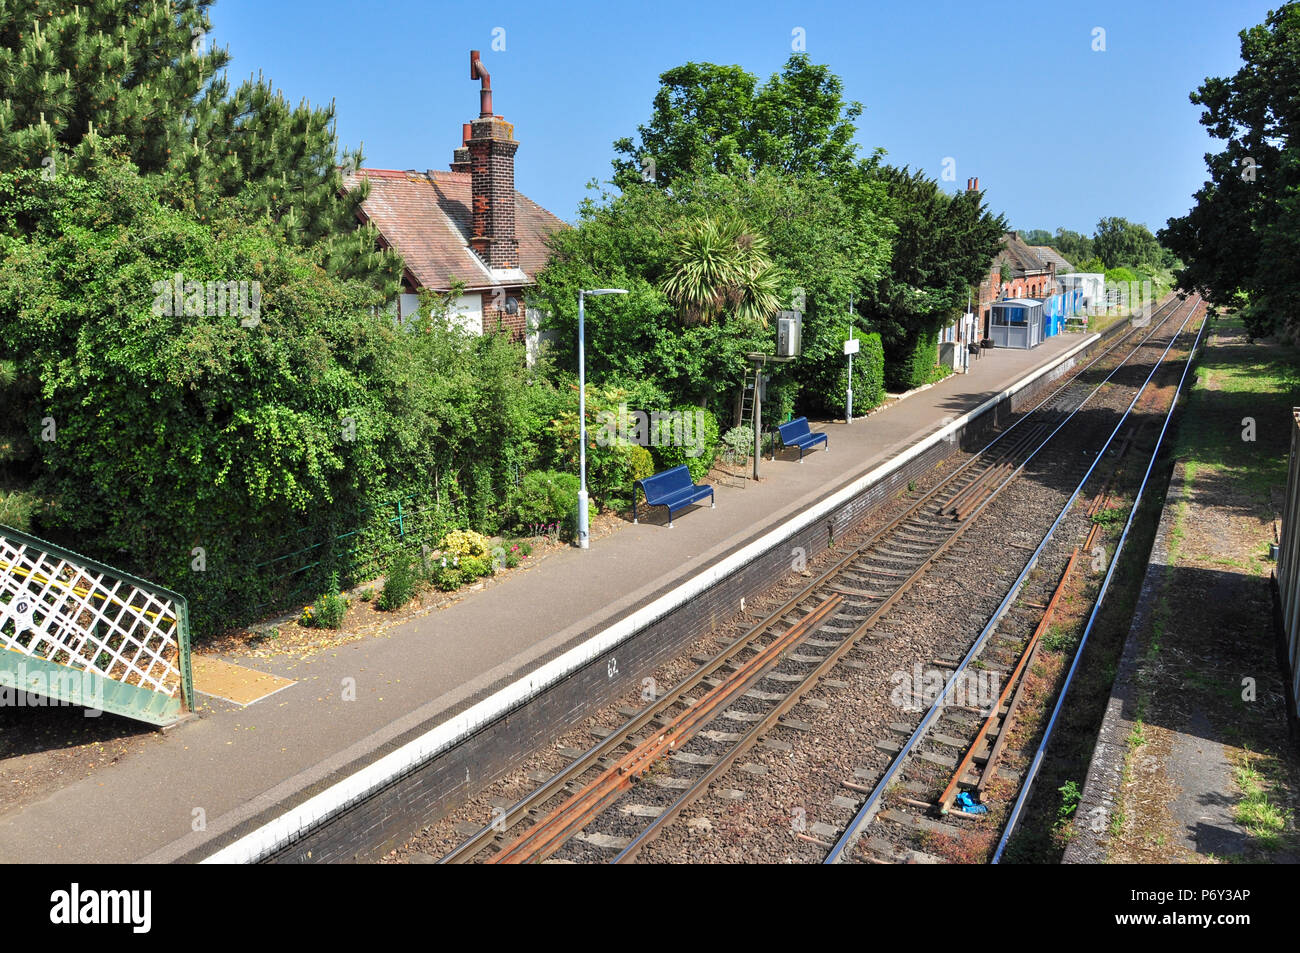 Trimley railway station (serving the village of Trimley St Mary), on the Felixstowe branch, Suffolk, England, UK - Stock Image